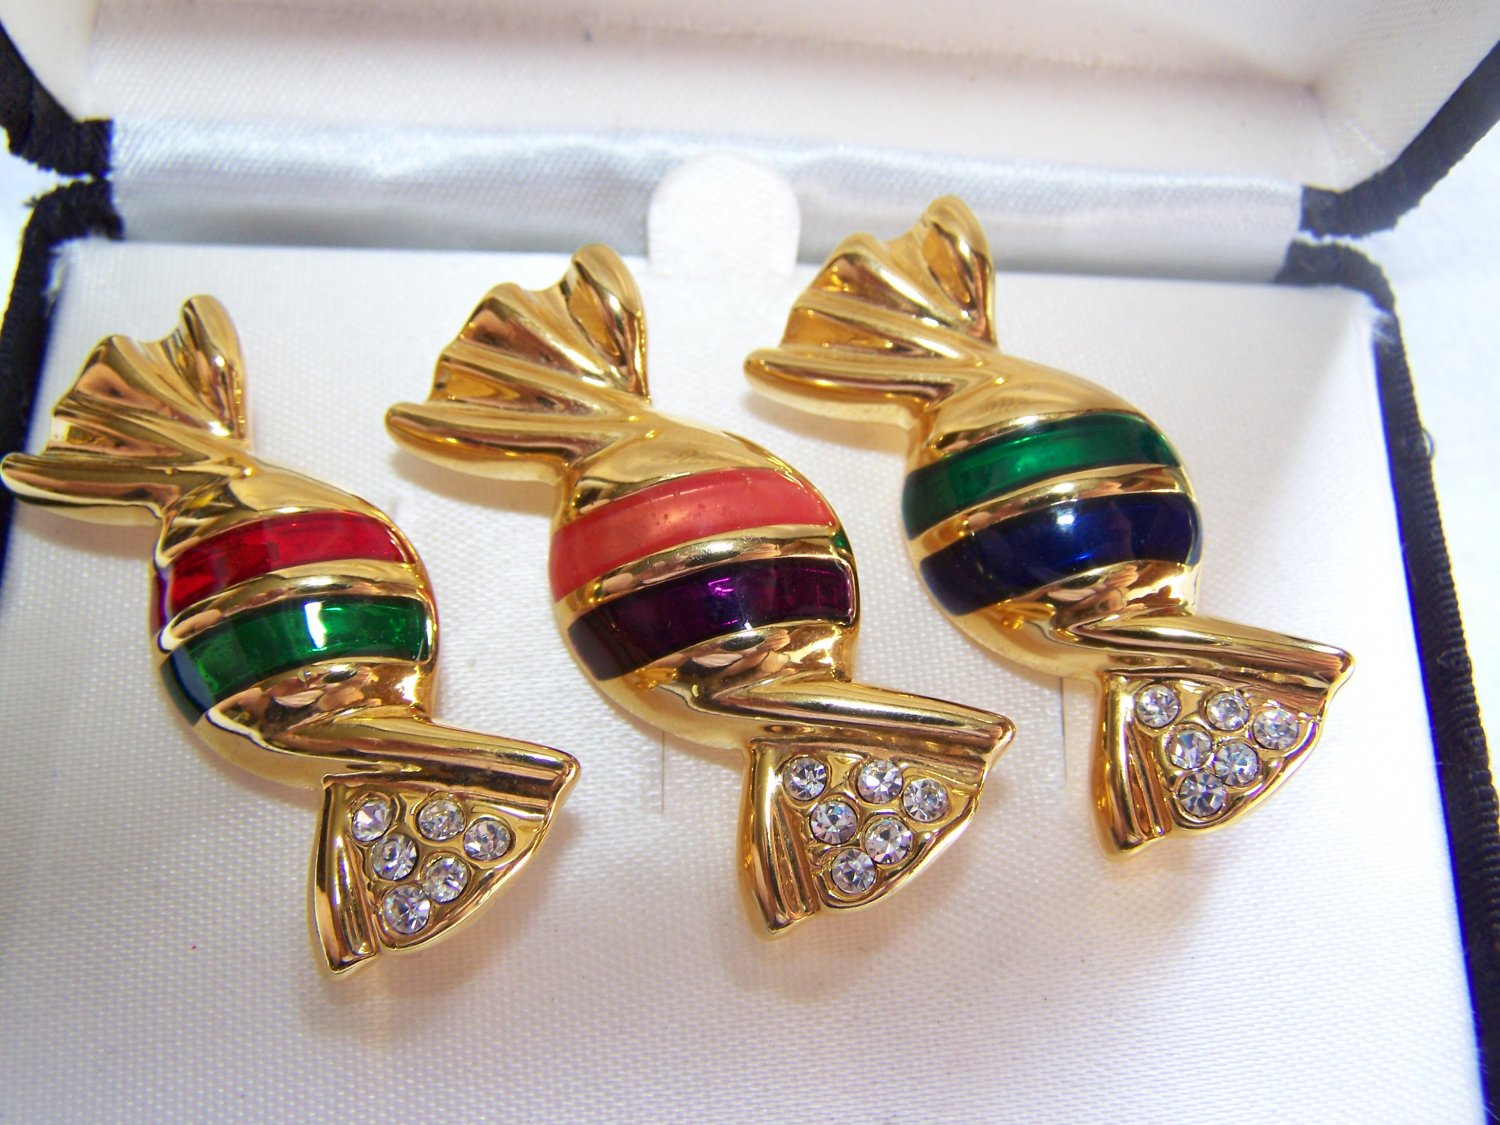 3 Christmas Pin Set Wrapped Hard Candy Gold Tone Metal Clear Rhinestones